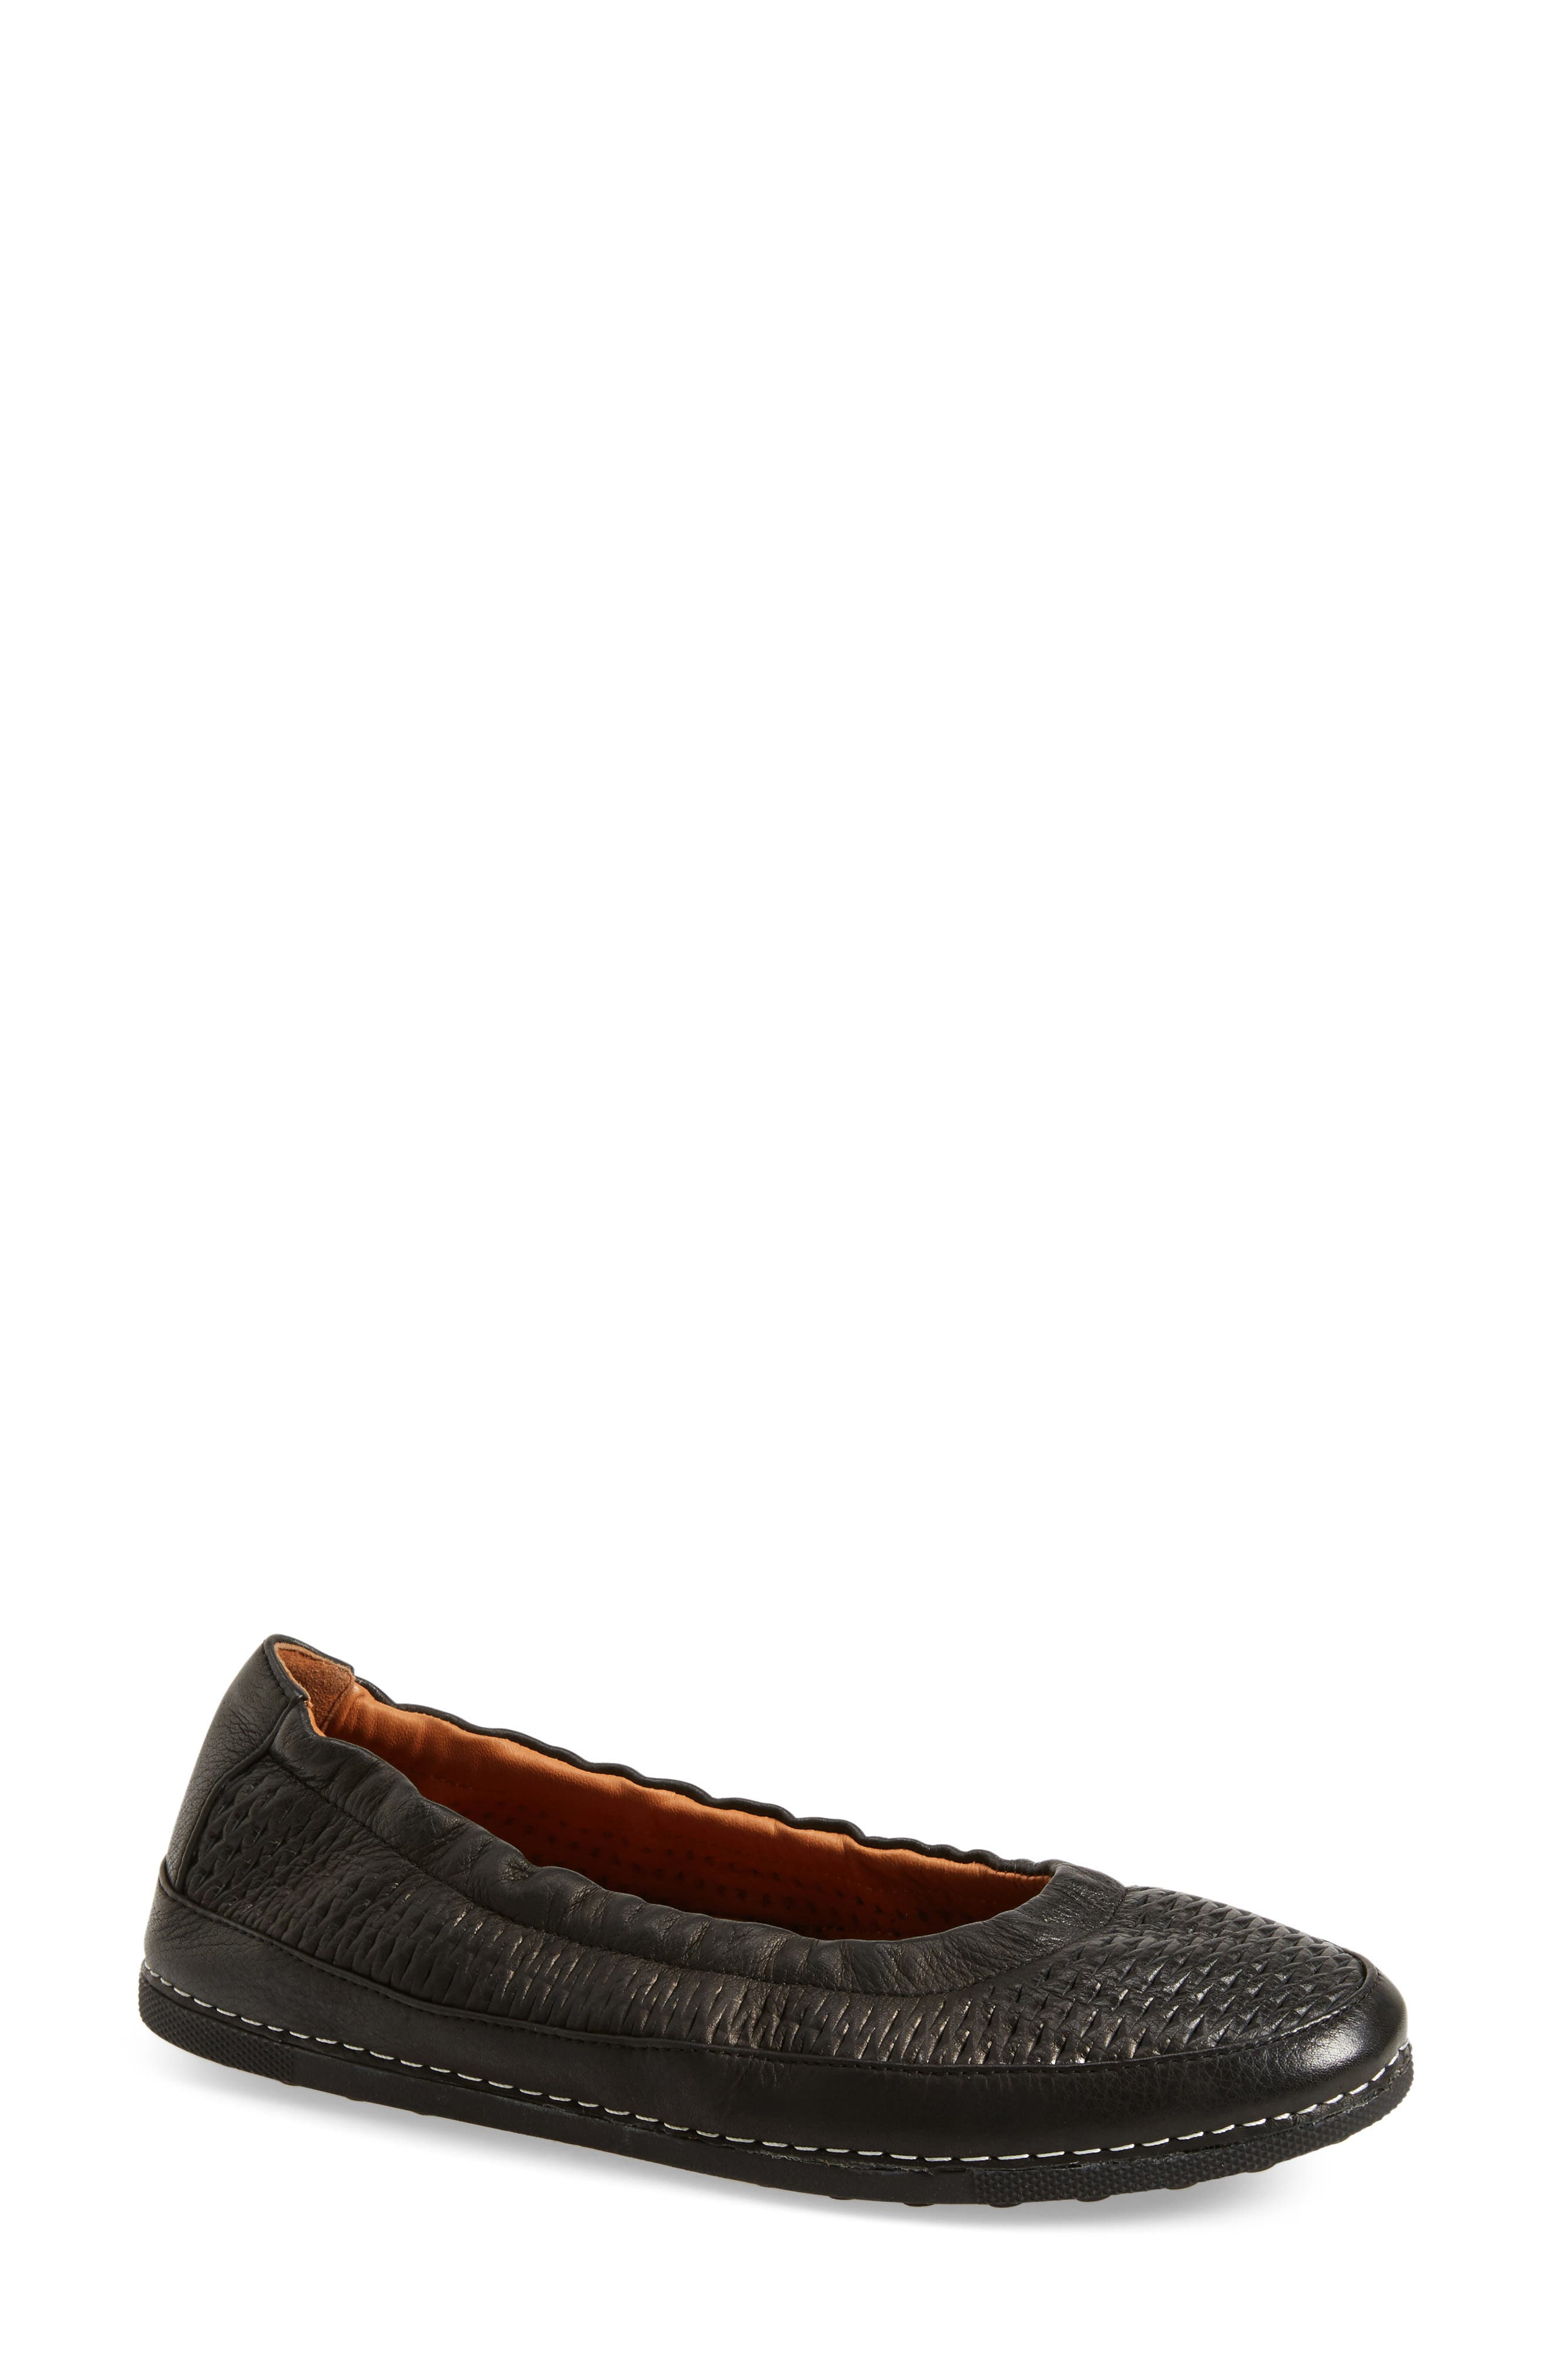 Dieppe Textured Flat,                         Main,                         color, 001